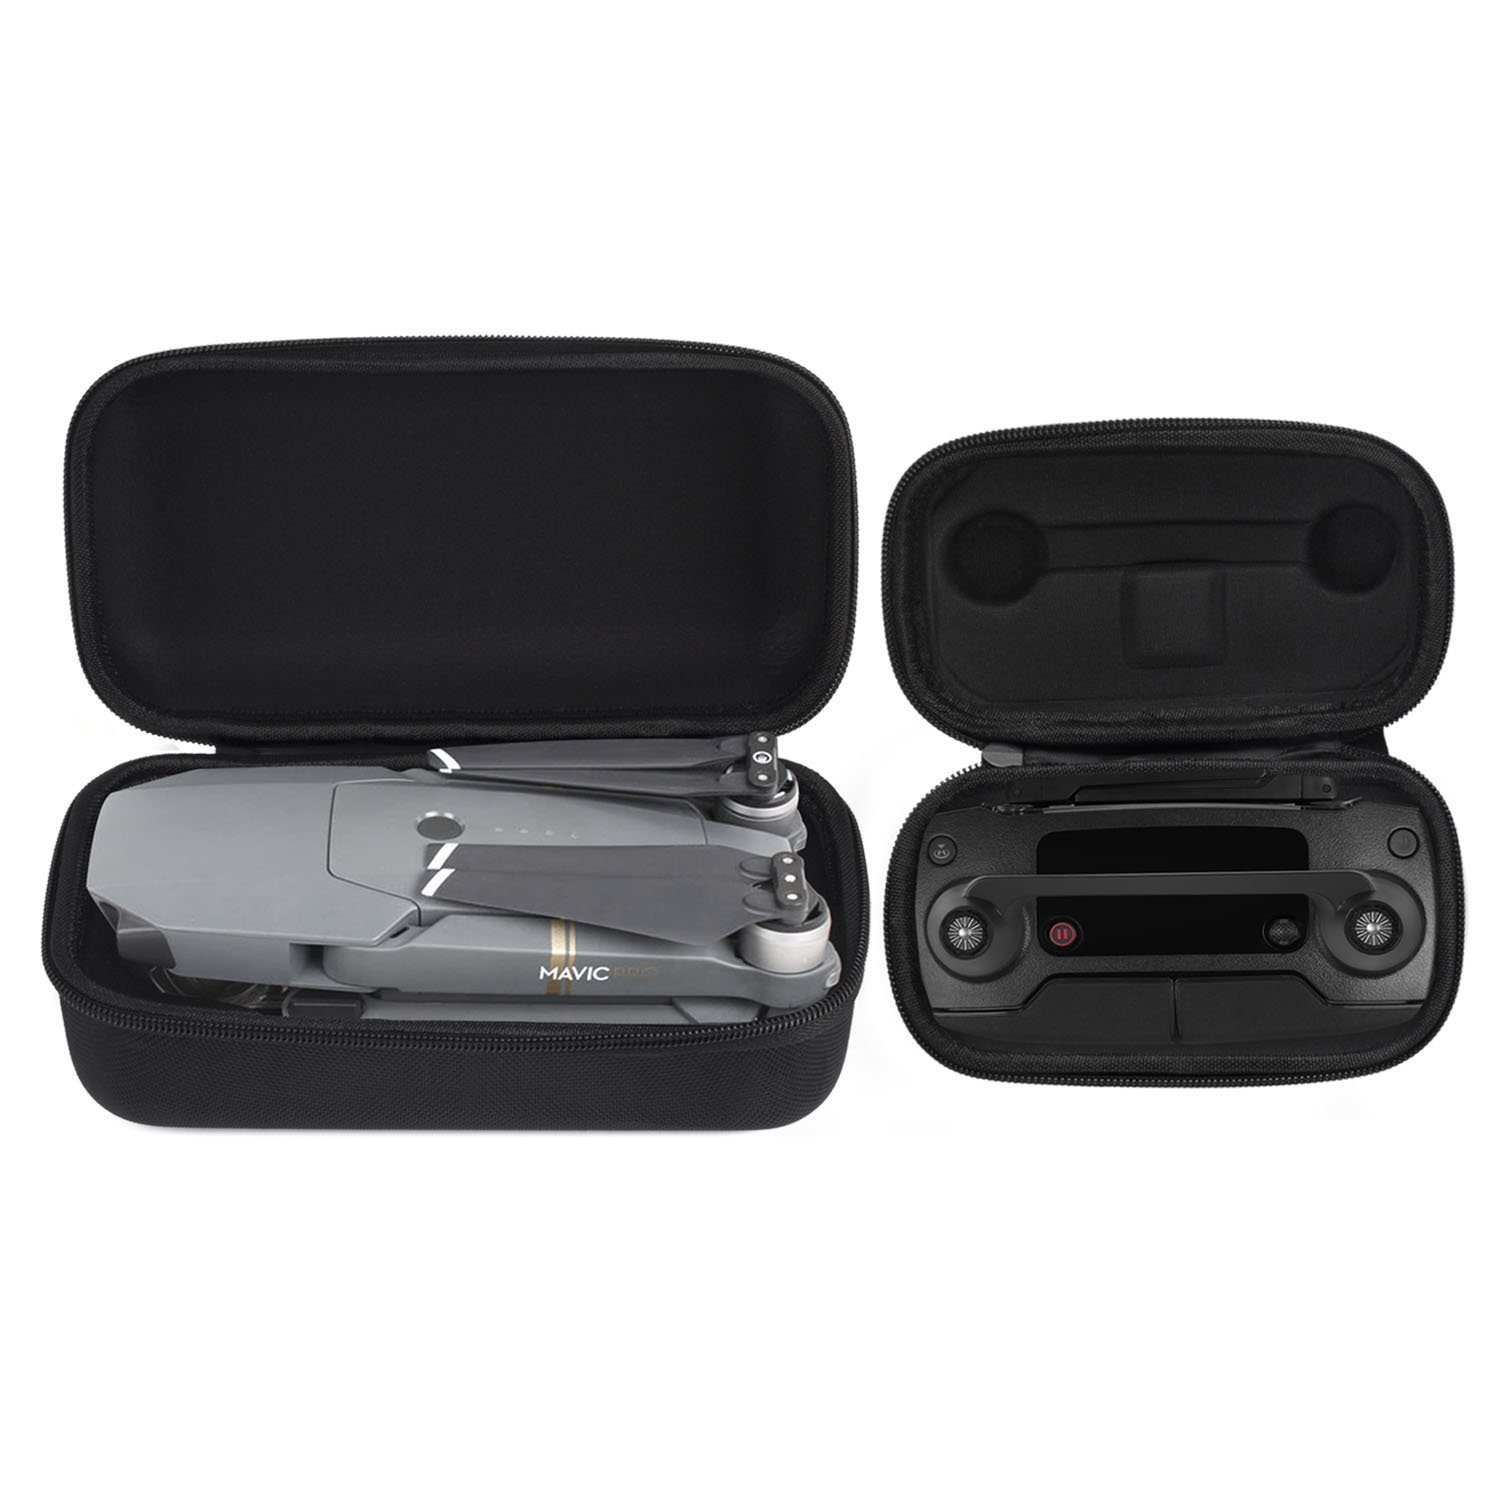 Deyard Carrying case for DJI Mavic Pro Drone and Remote Controller